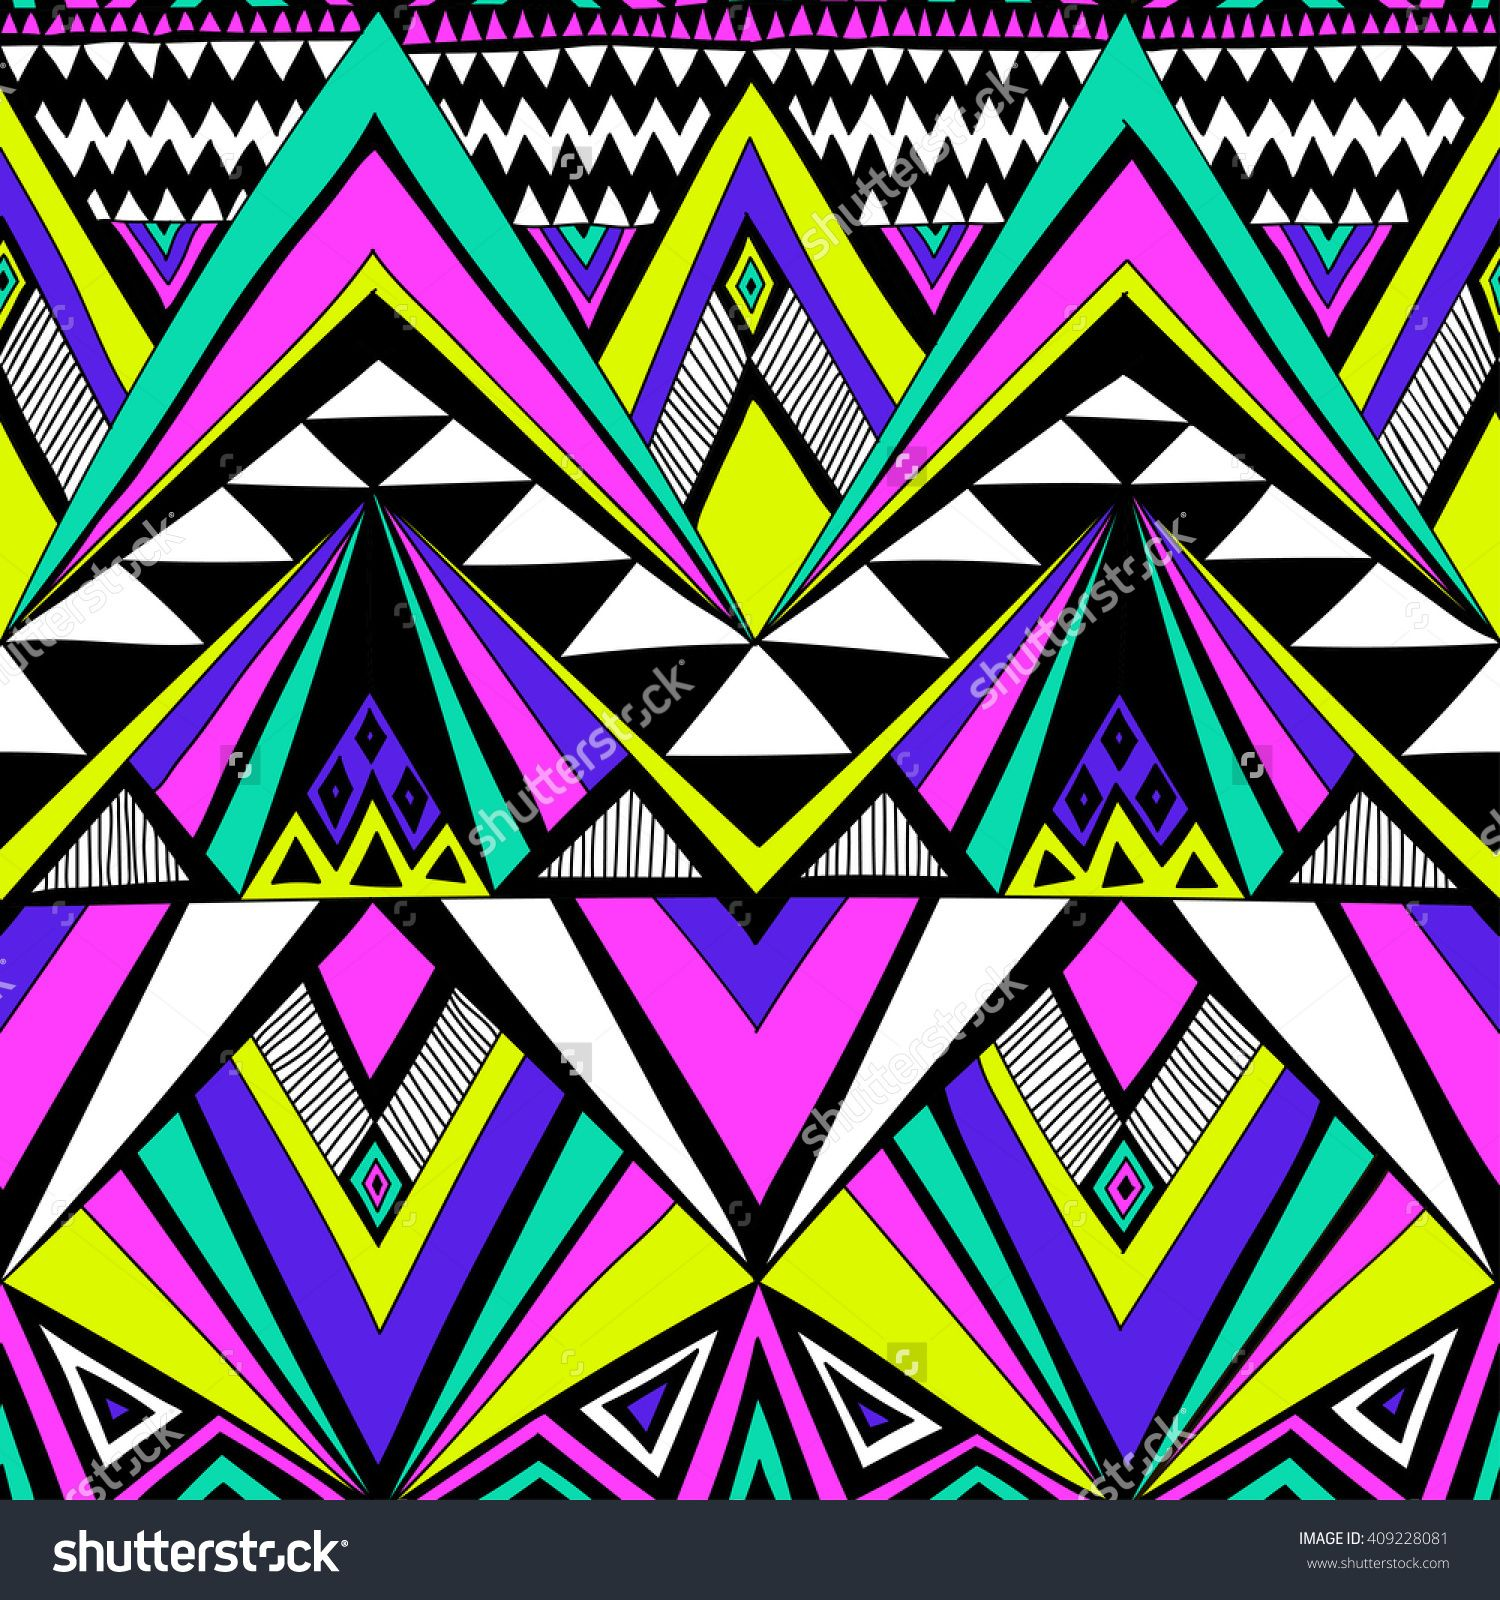 Neon Colors Tribal Navajo Vector Seamless Pattern With Doodle Elements Aztec Abstrac Abstract Geometric Art Print Geometric Art Prints Cute Patterns Wallpaper